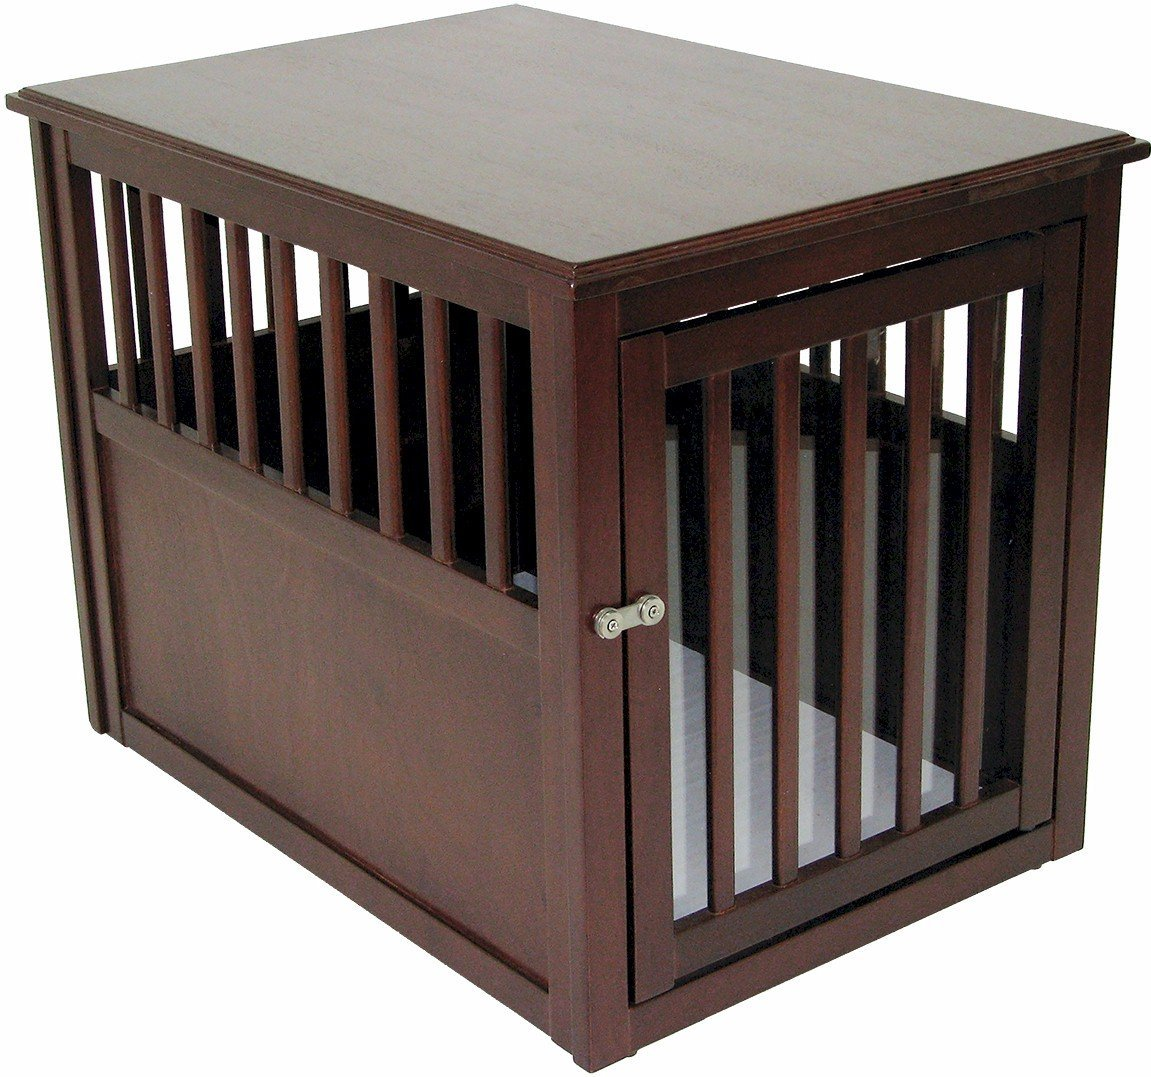 Amazon.com : Crown Pet Products Pet Crate Wood Dog Crate Furniture End Table,  Medium Size With Espresso Finish : Dog Crates : Pet Supplies